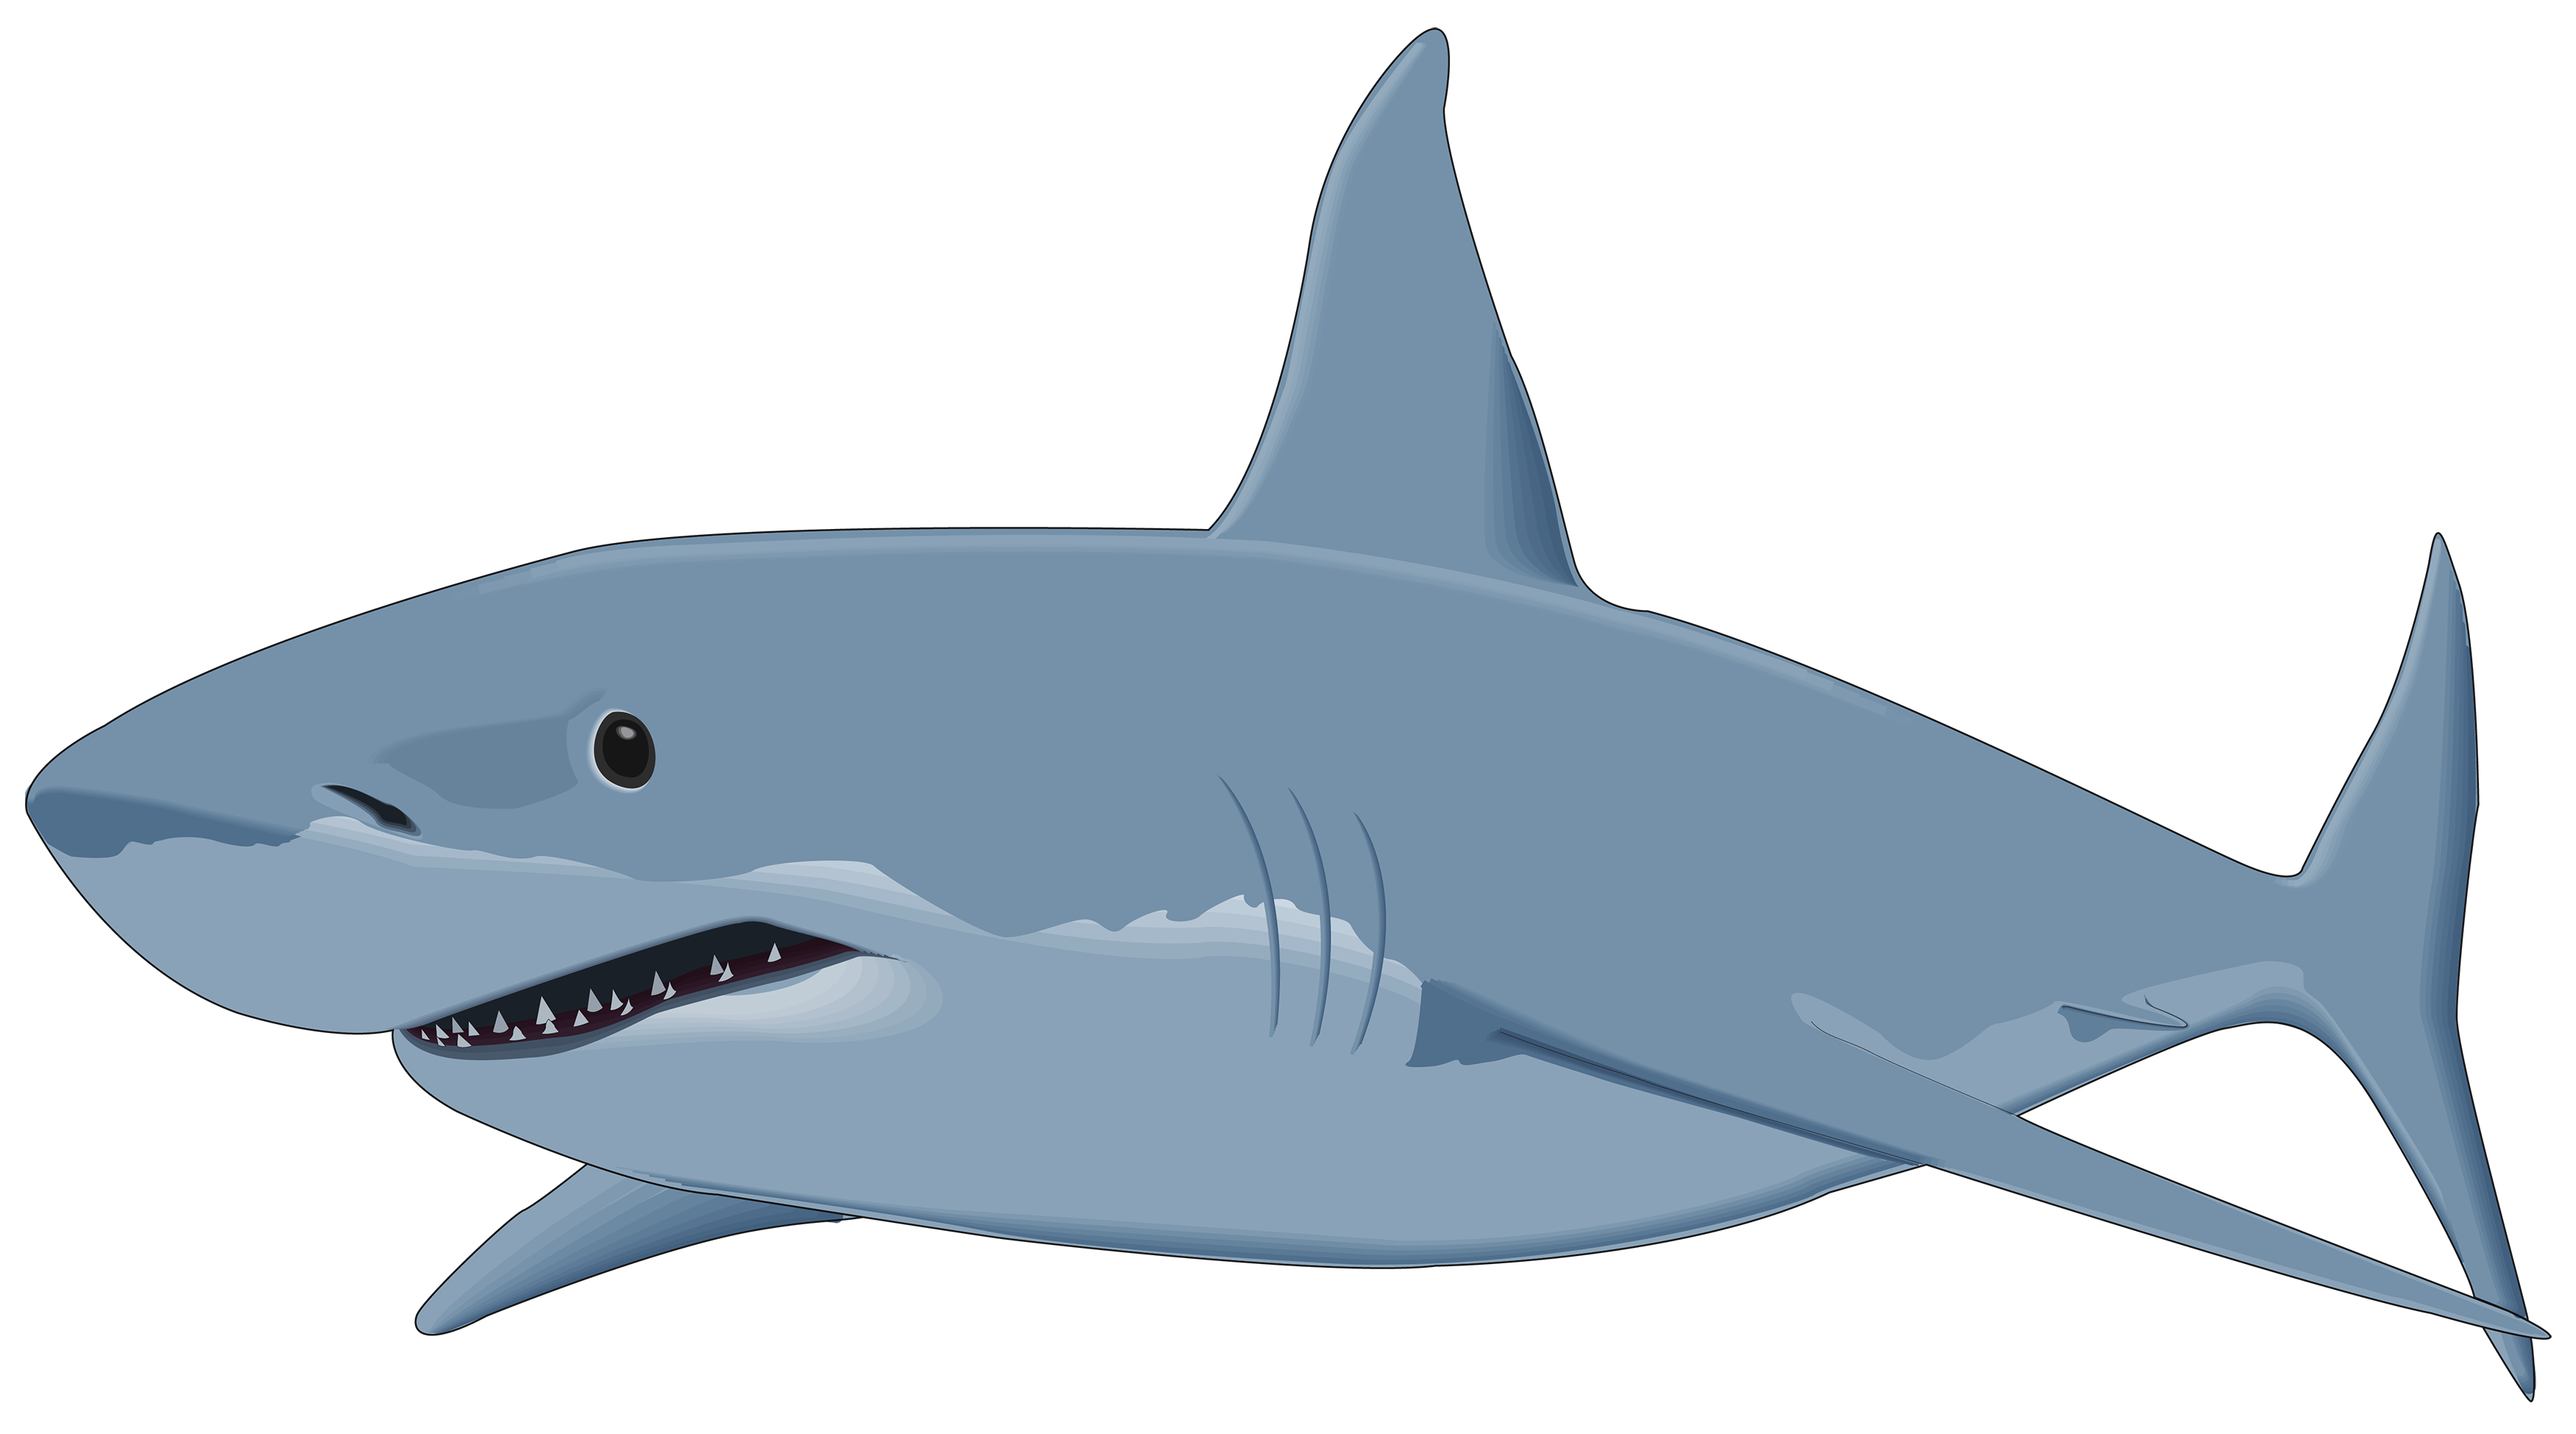 Shark clipart #1, Download drawings